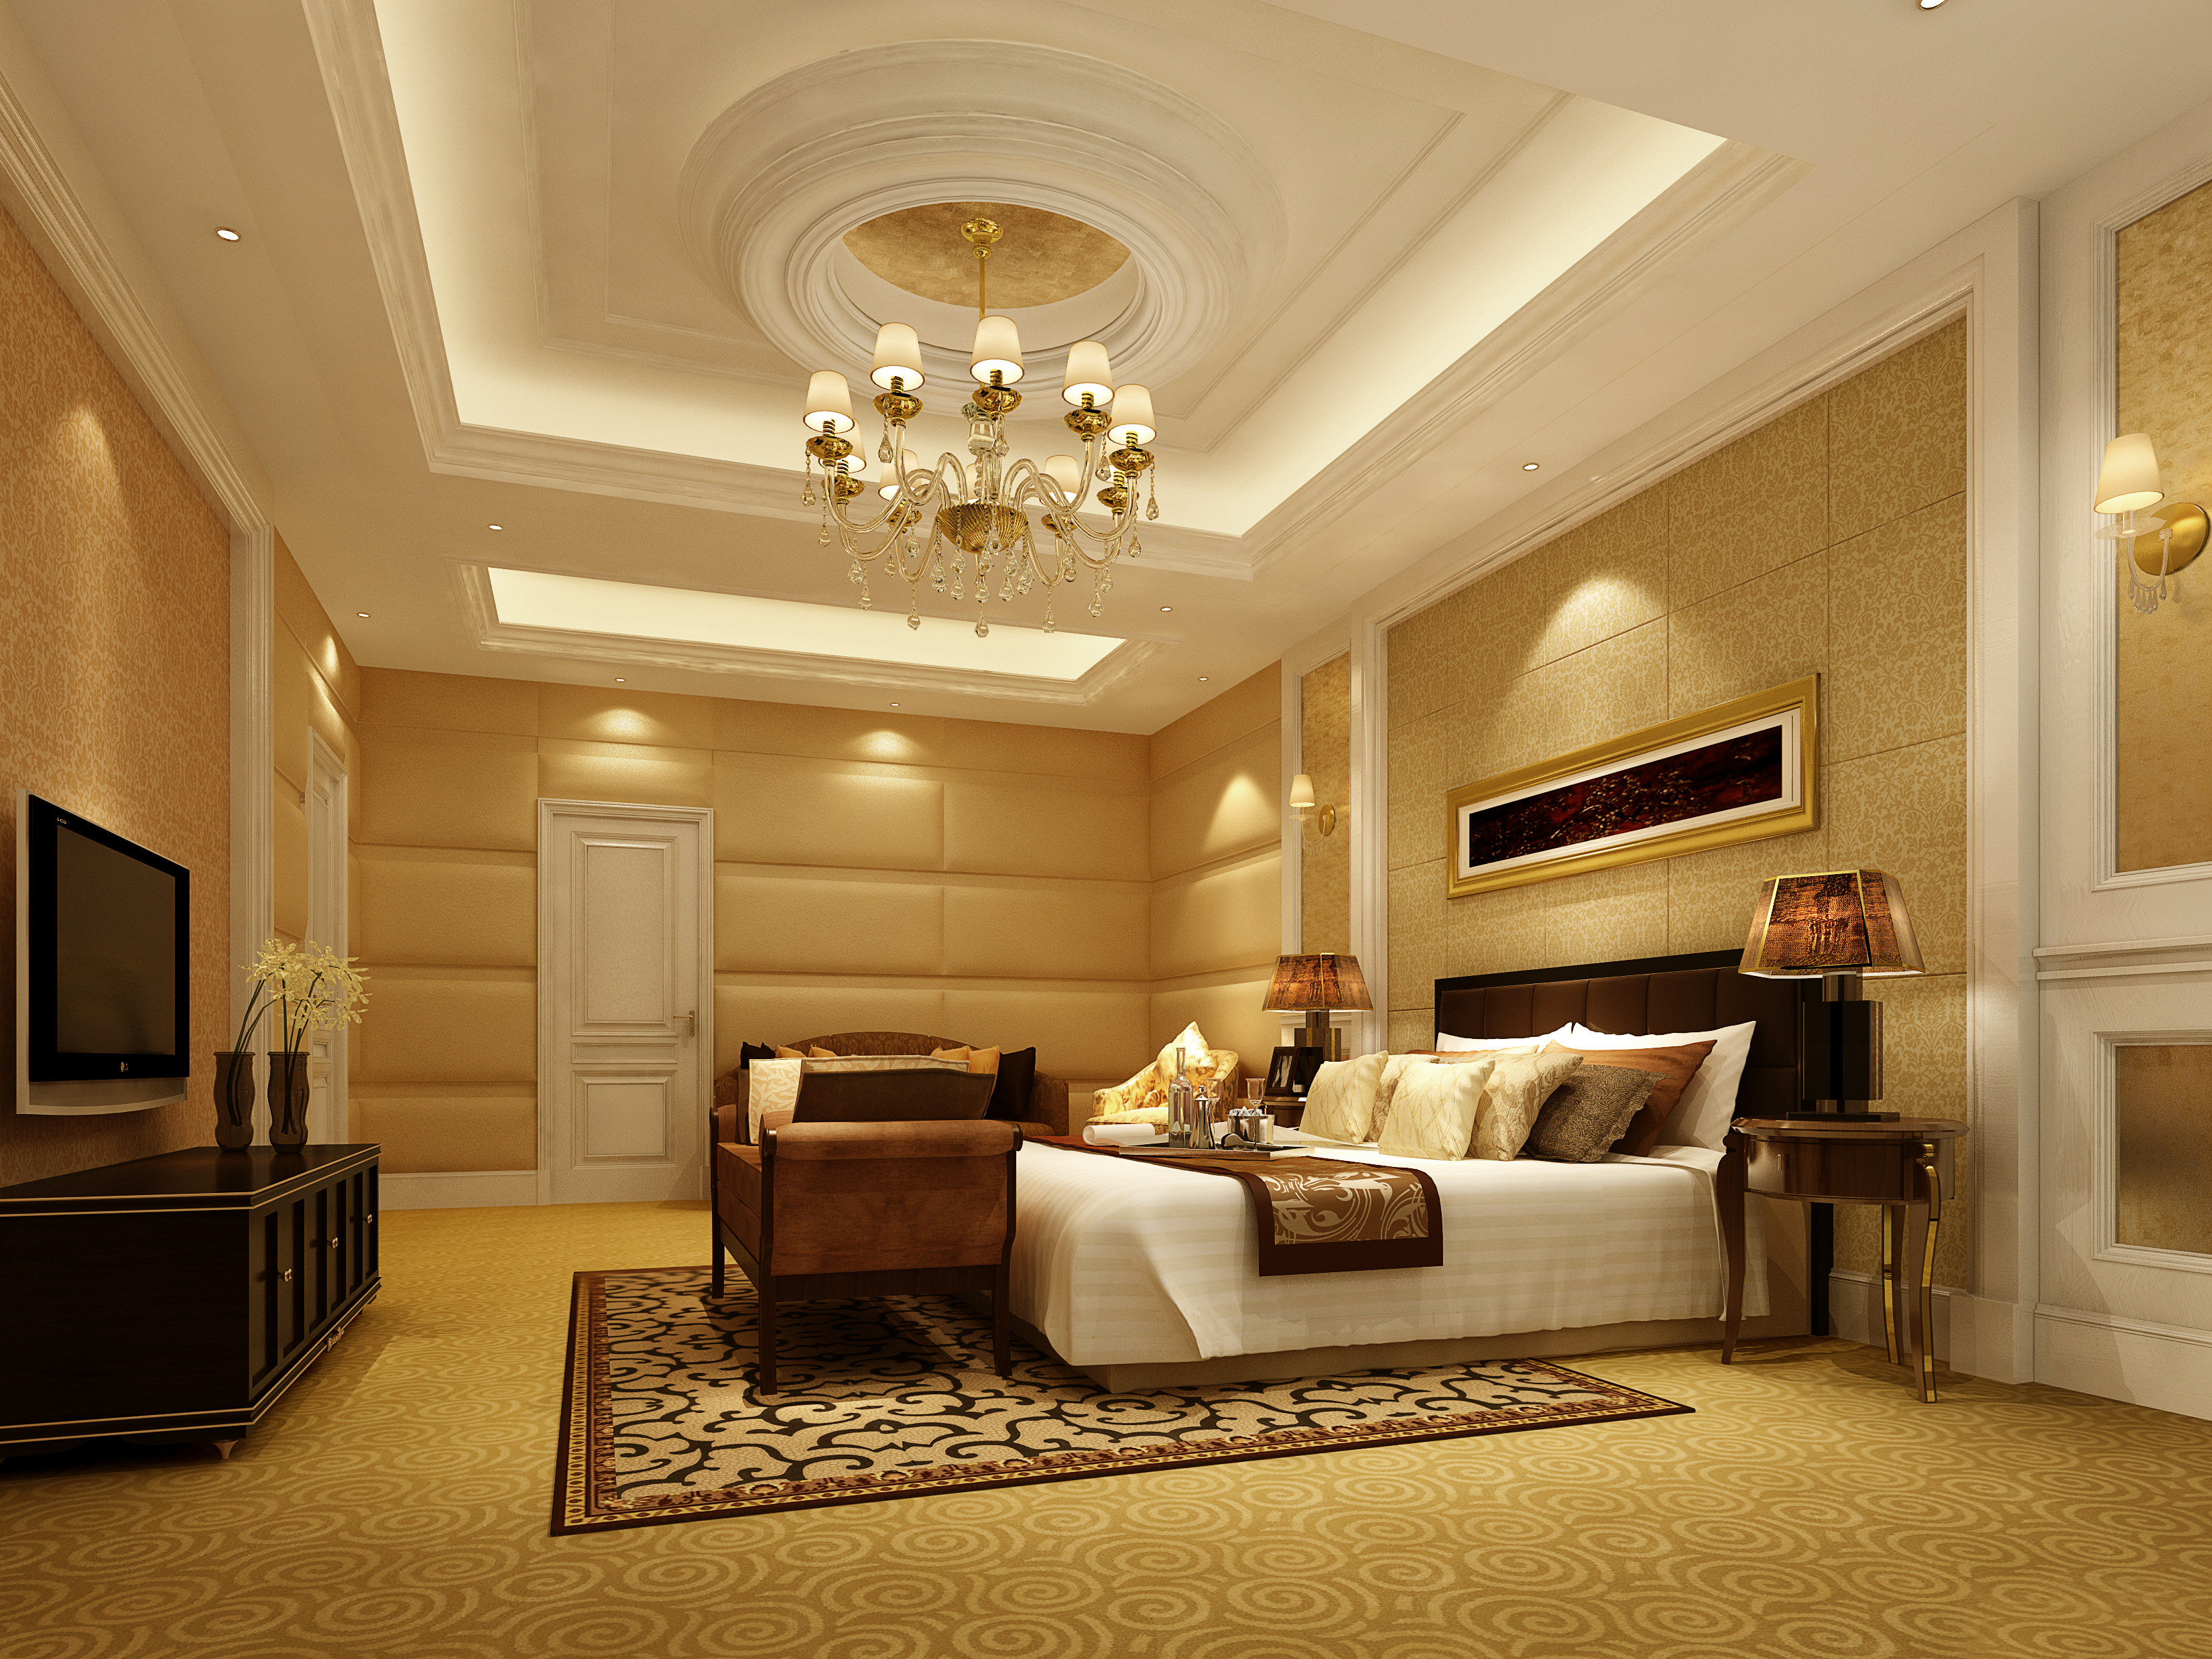 Charmant ... Collection Living Room And Bedroom Collection 3d Model Max 8 ...